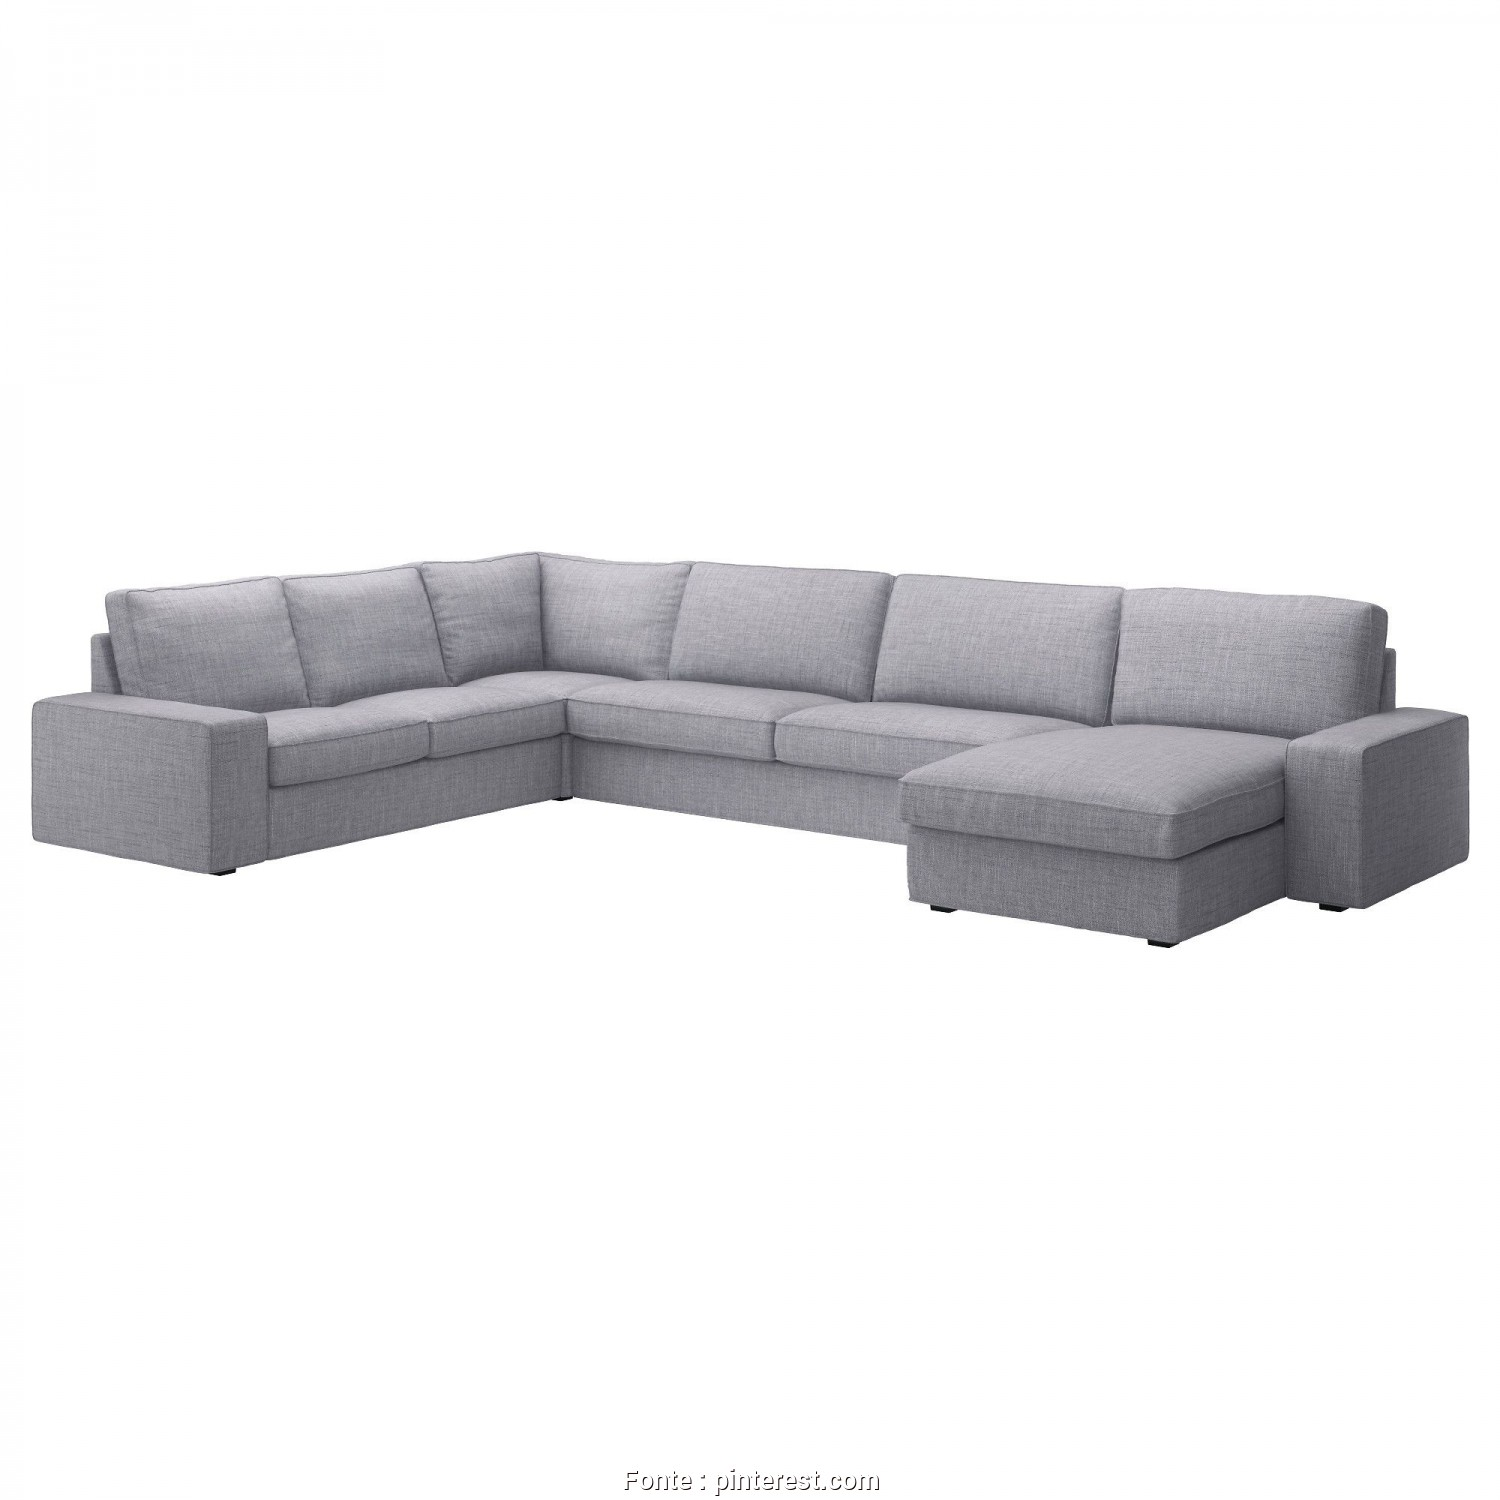 Kivik 3 Posti Beige, Eccezionale IKEA, KIVIK, Corner Sofa 2+3/3+2, Chaise, Isunda Gray, , 10-Year Limited Warrranty. Read About, Terms In, Limited Warranty Brochure